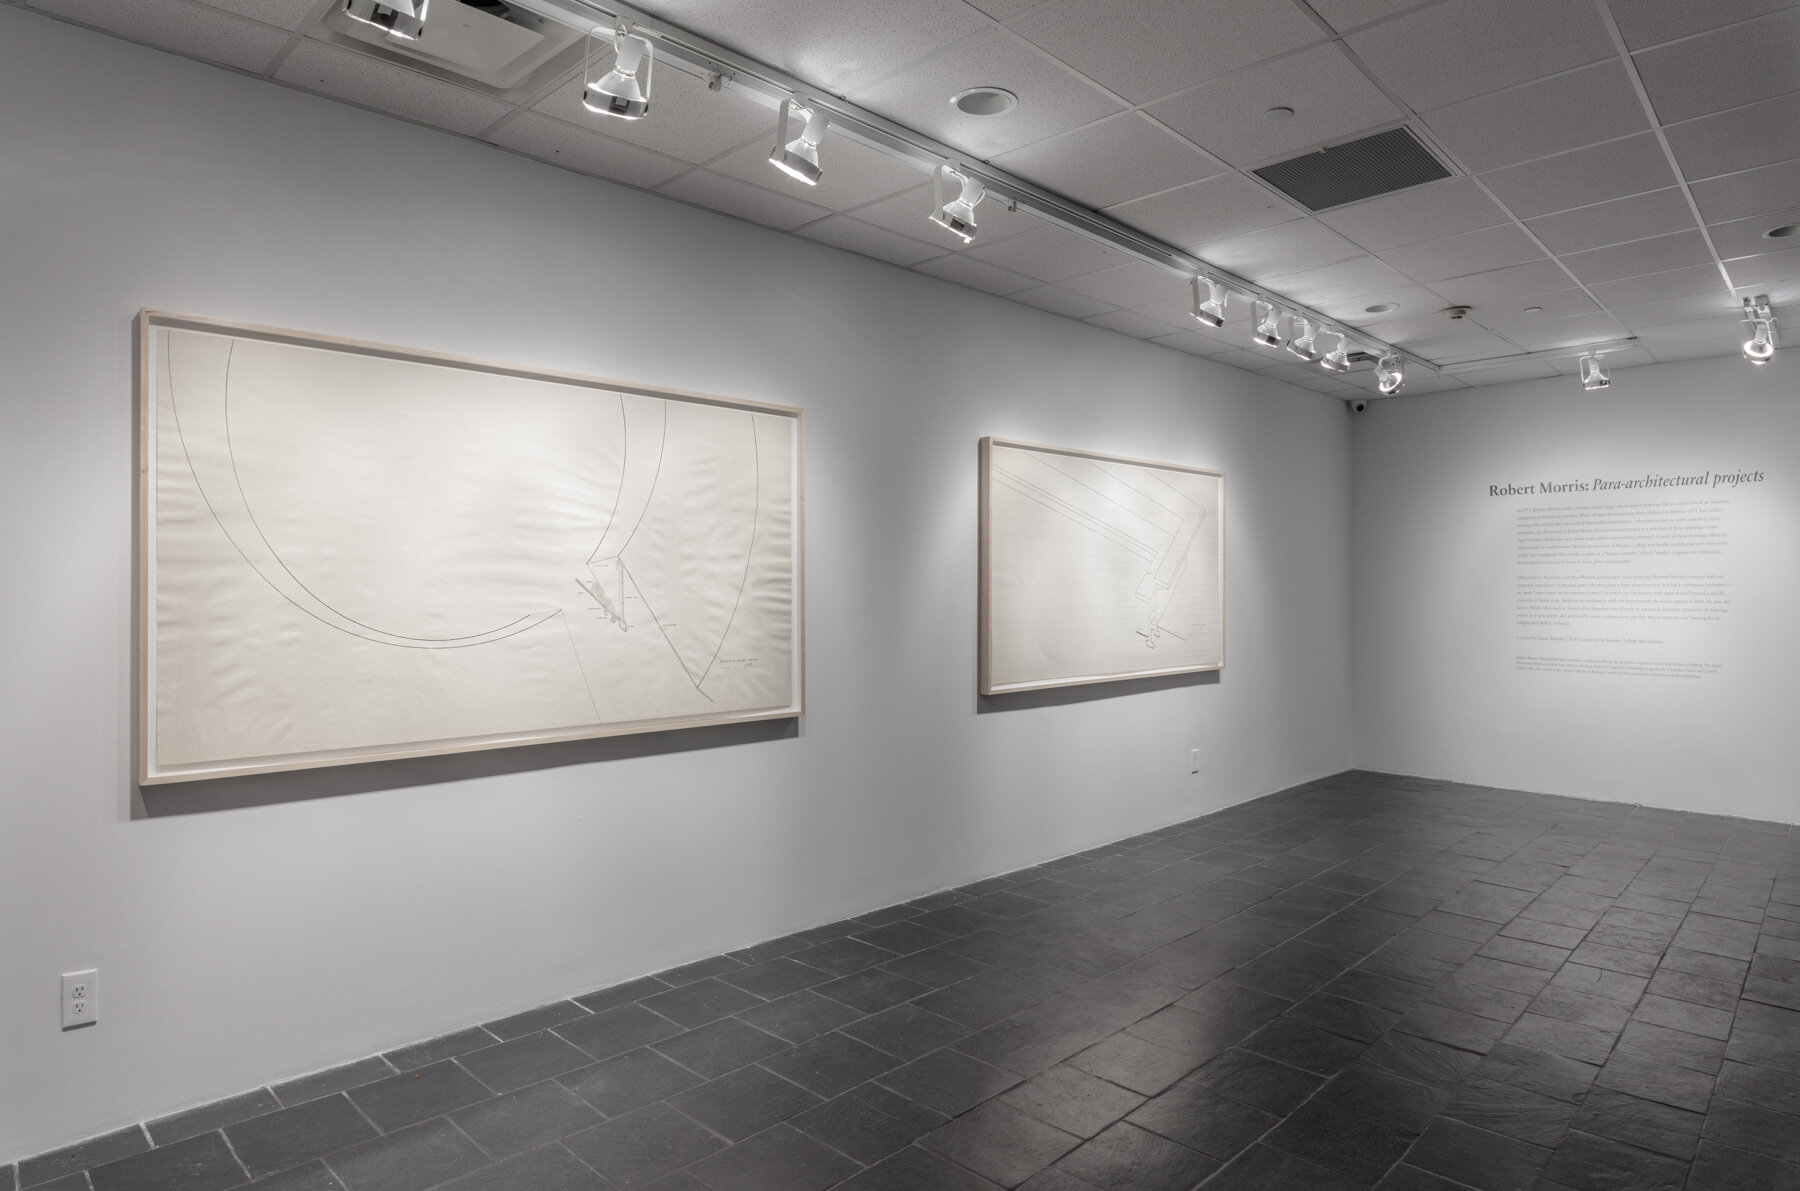 Installation view:  Robert Morris: Para-architectural projects , Hunter College Art Galleries, 2019. LEFT:  Section of an Enclosed Courtyard , 1971. Ink on paper, 42 x 82 ½ in. (107 x 210 cm). Estate of Robert Morris, courtesy Castelli Gallery, New York. RIGHT:  Section of a Walled Courtyard , 1971. Ink on paper, 42 x 84 in. (107 x 213 cm).Courtesy of Hunter College, The City University of New York. © 2019 The Estate of Robert Morris / Artists Rights Society (ARS). Photo: Stan Narten